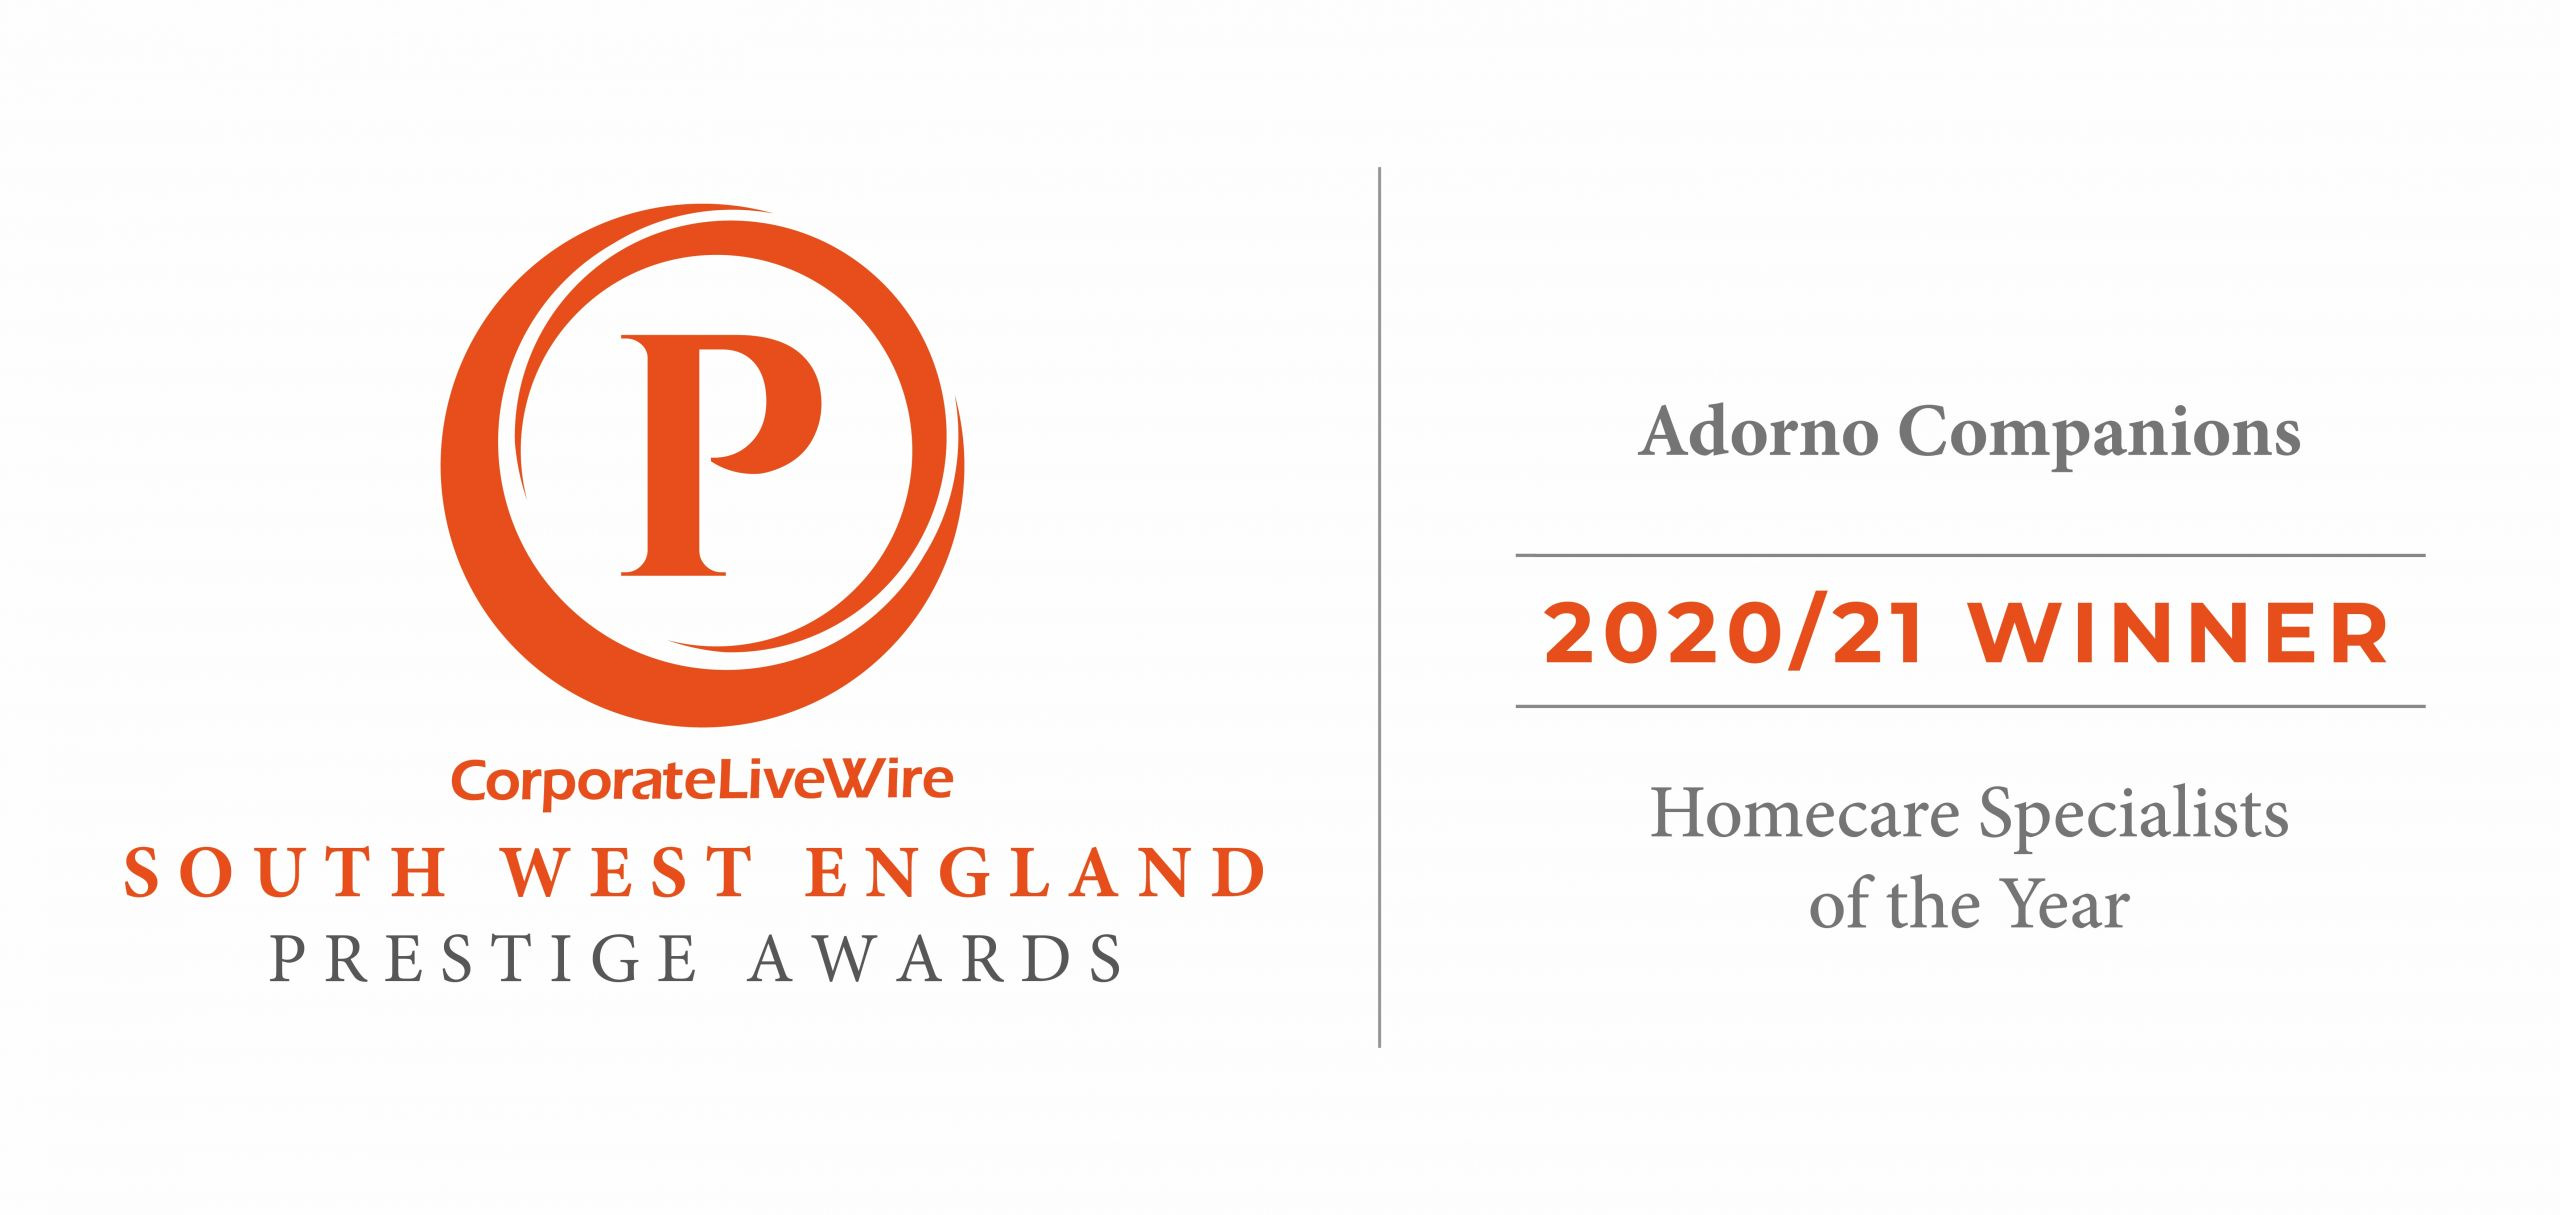 Award Winners: Homecare Specialists of the Year 20/21, Prestige Awards